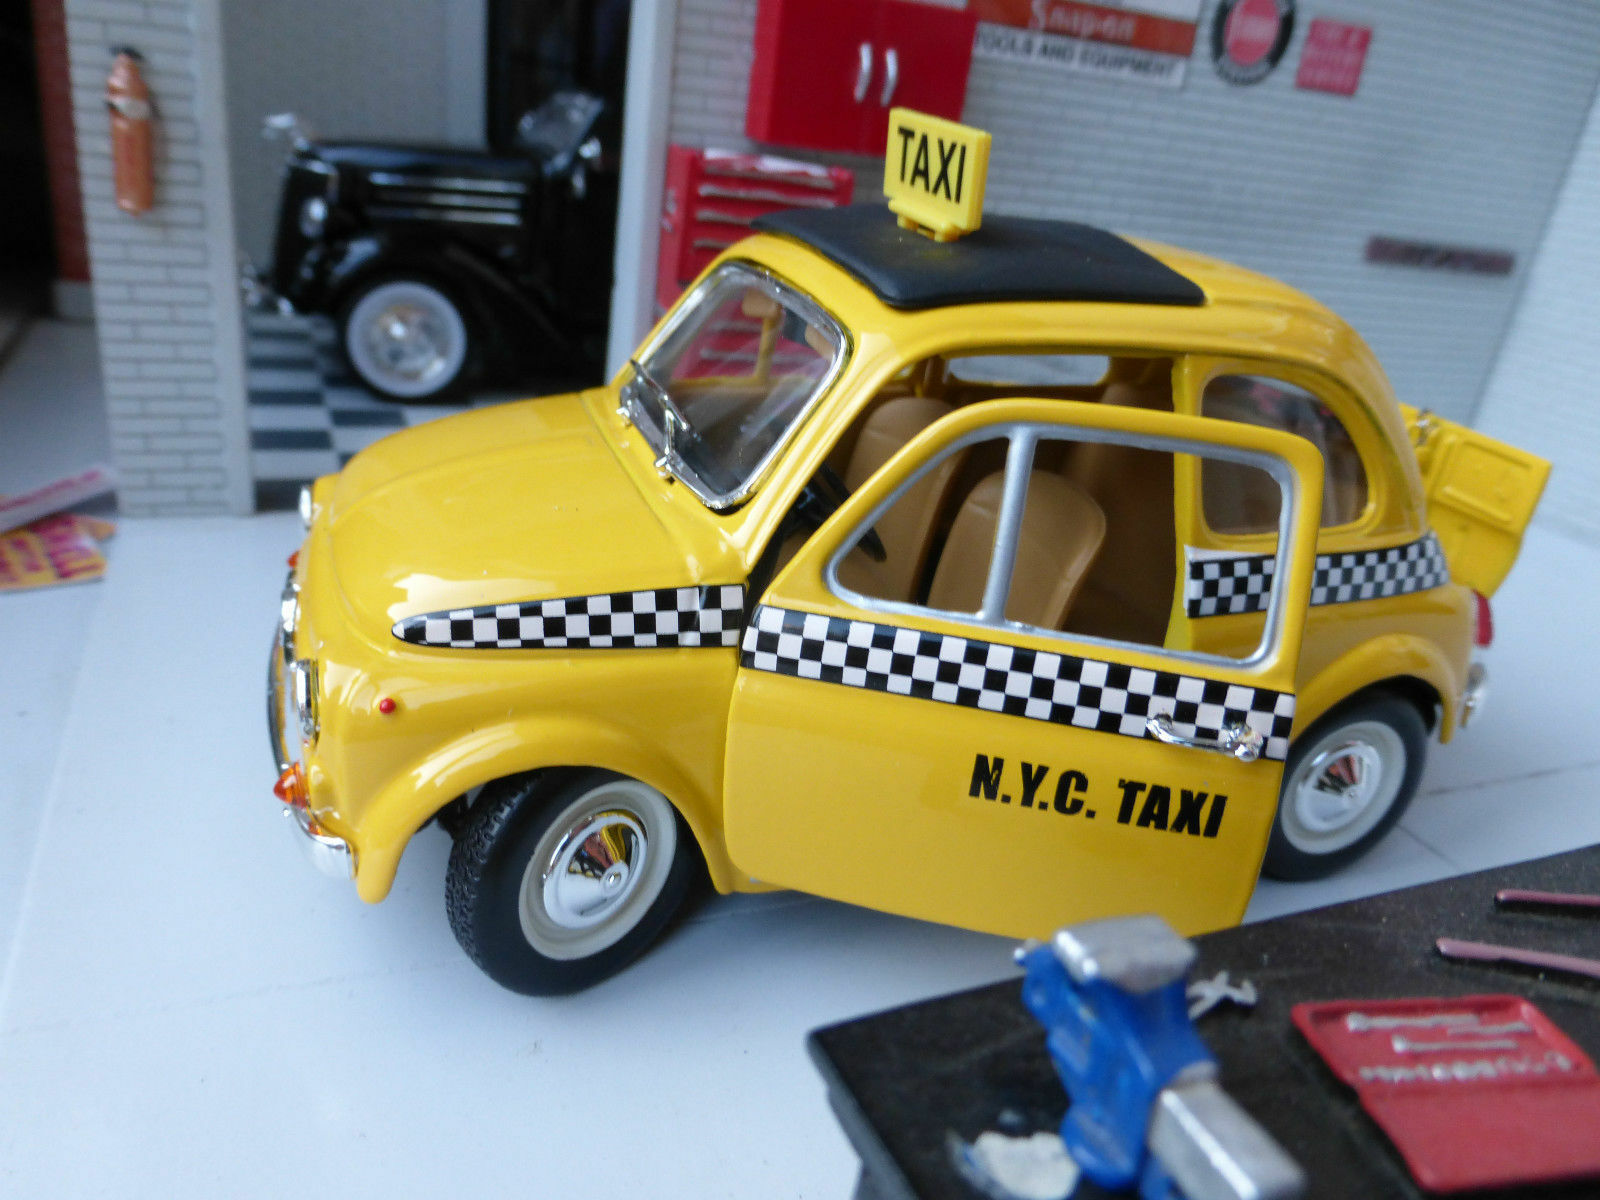 LGB G Scale Scale Scale 1 24 Fiat 500 Model Yellow Taxi NYC USA Car Detailed Burago Diecast ea97ef